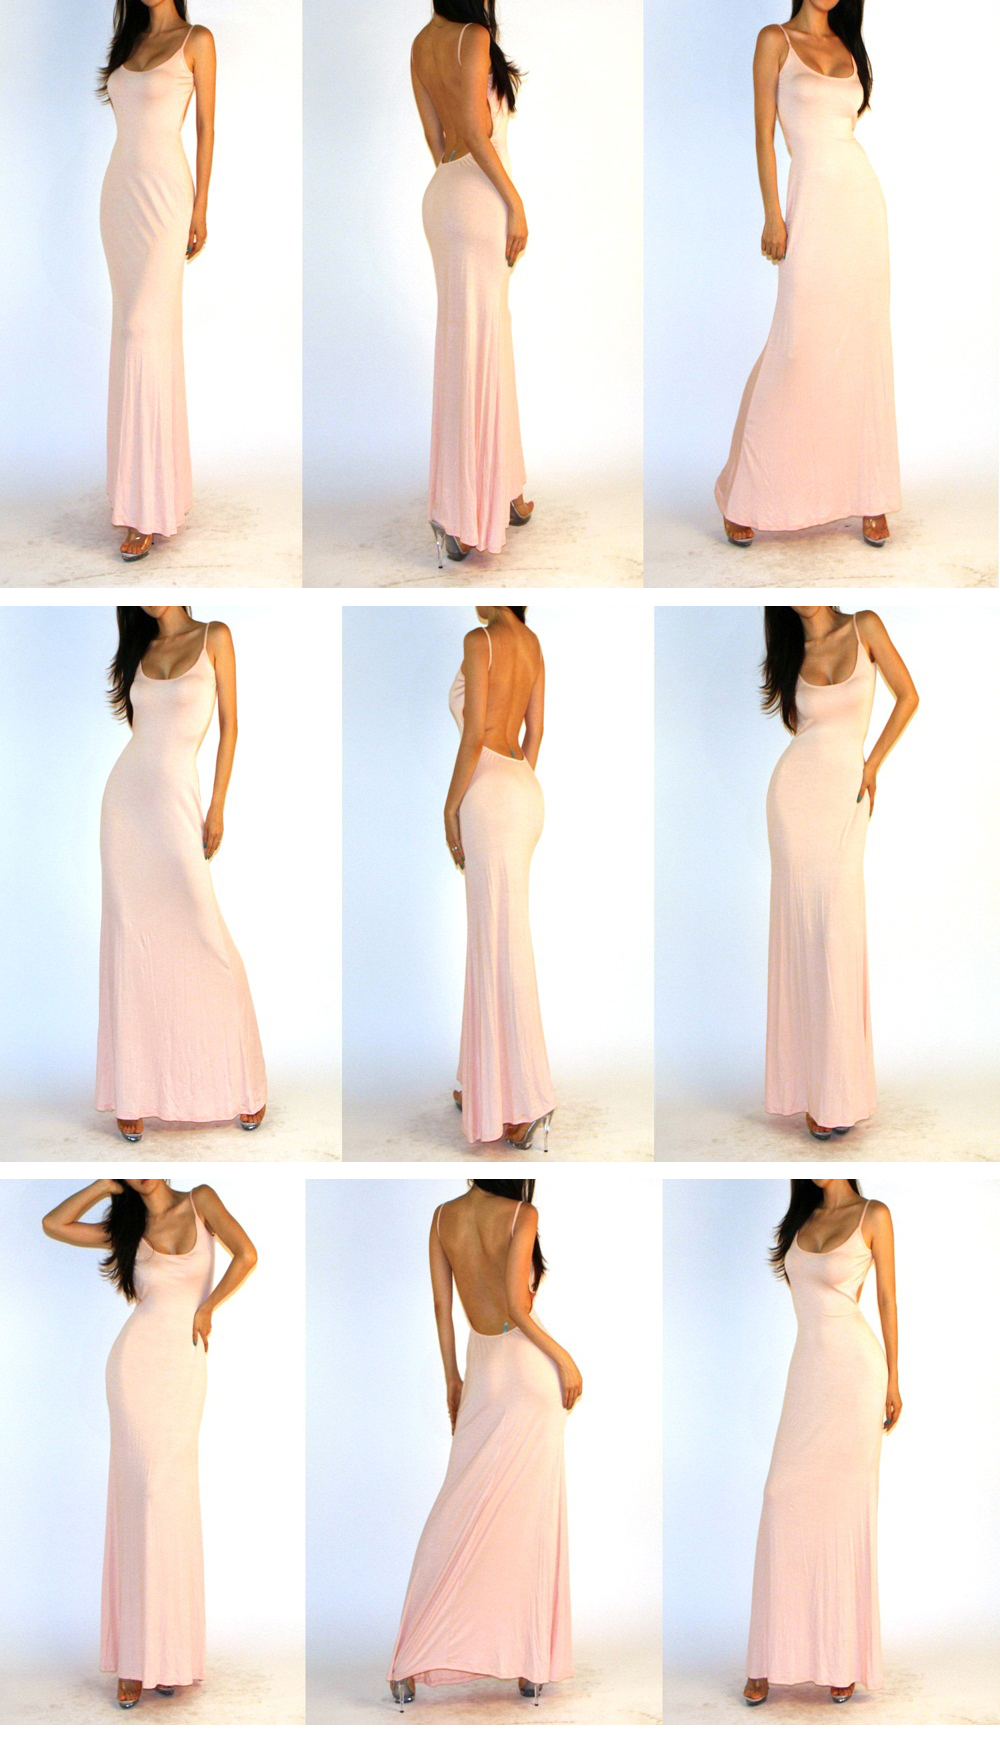 Sexy Light Pink Minimalist Open Back Backless Rayon Jersey Long Maxi Dress SML | eBay